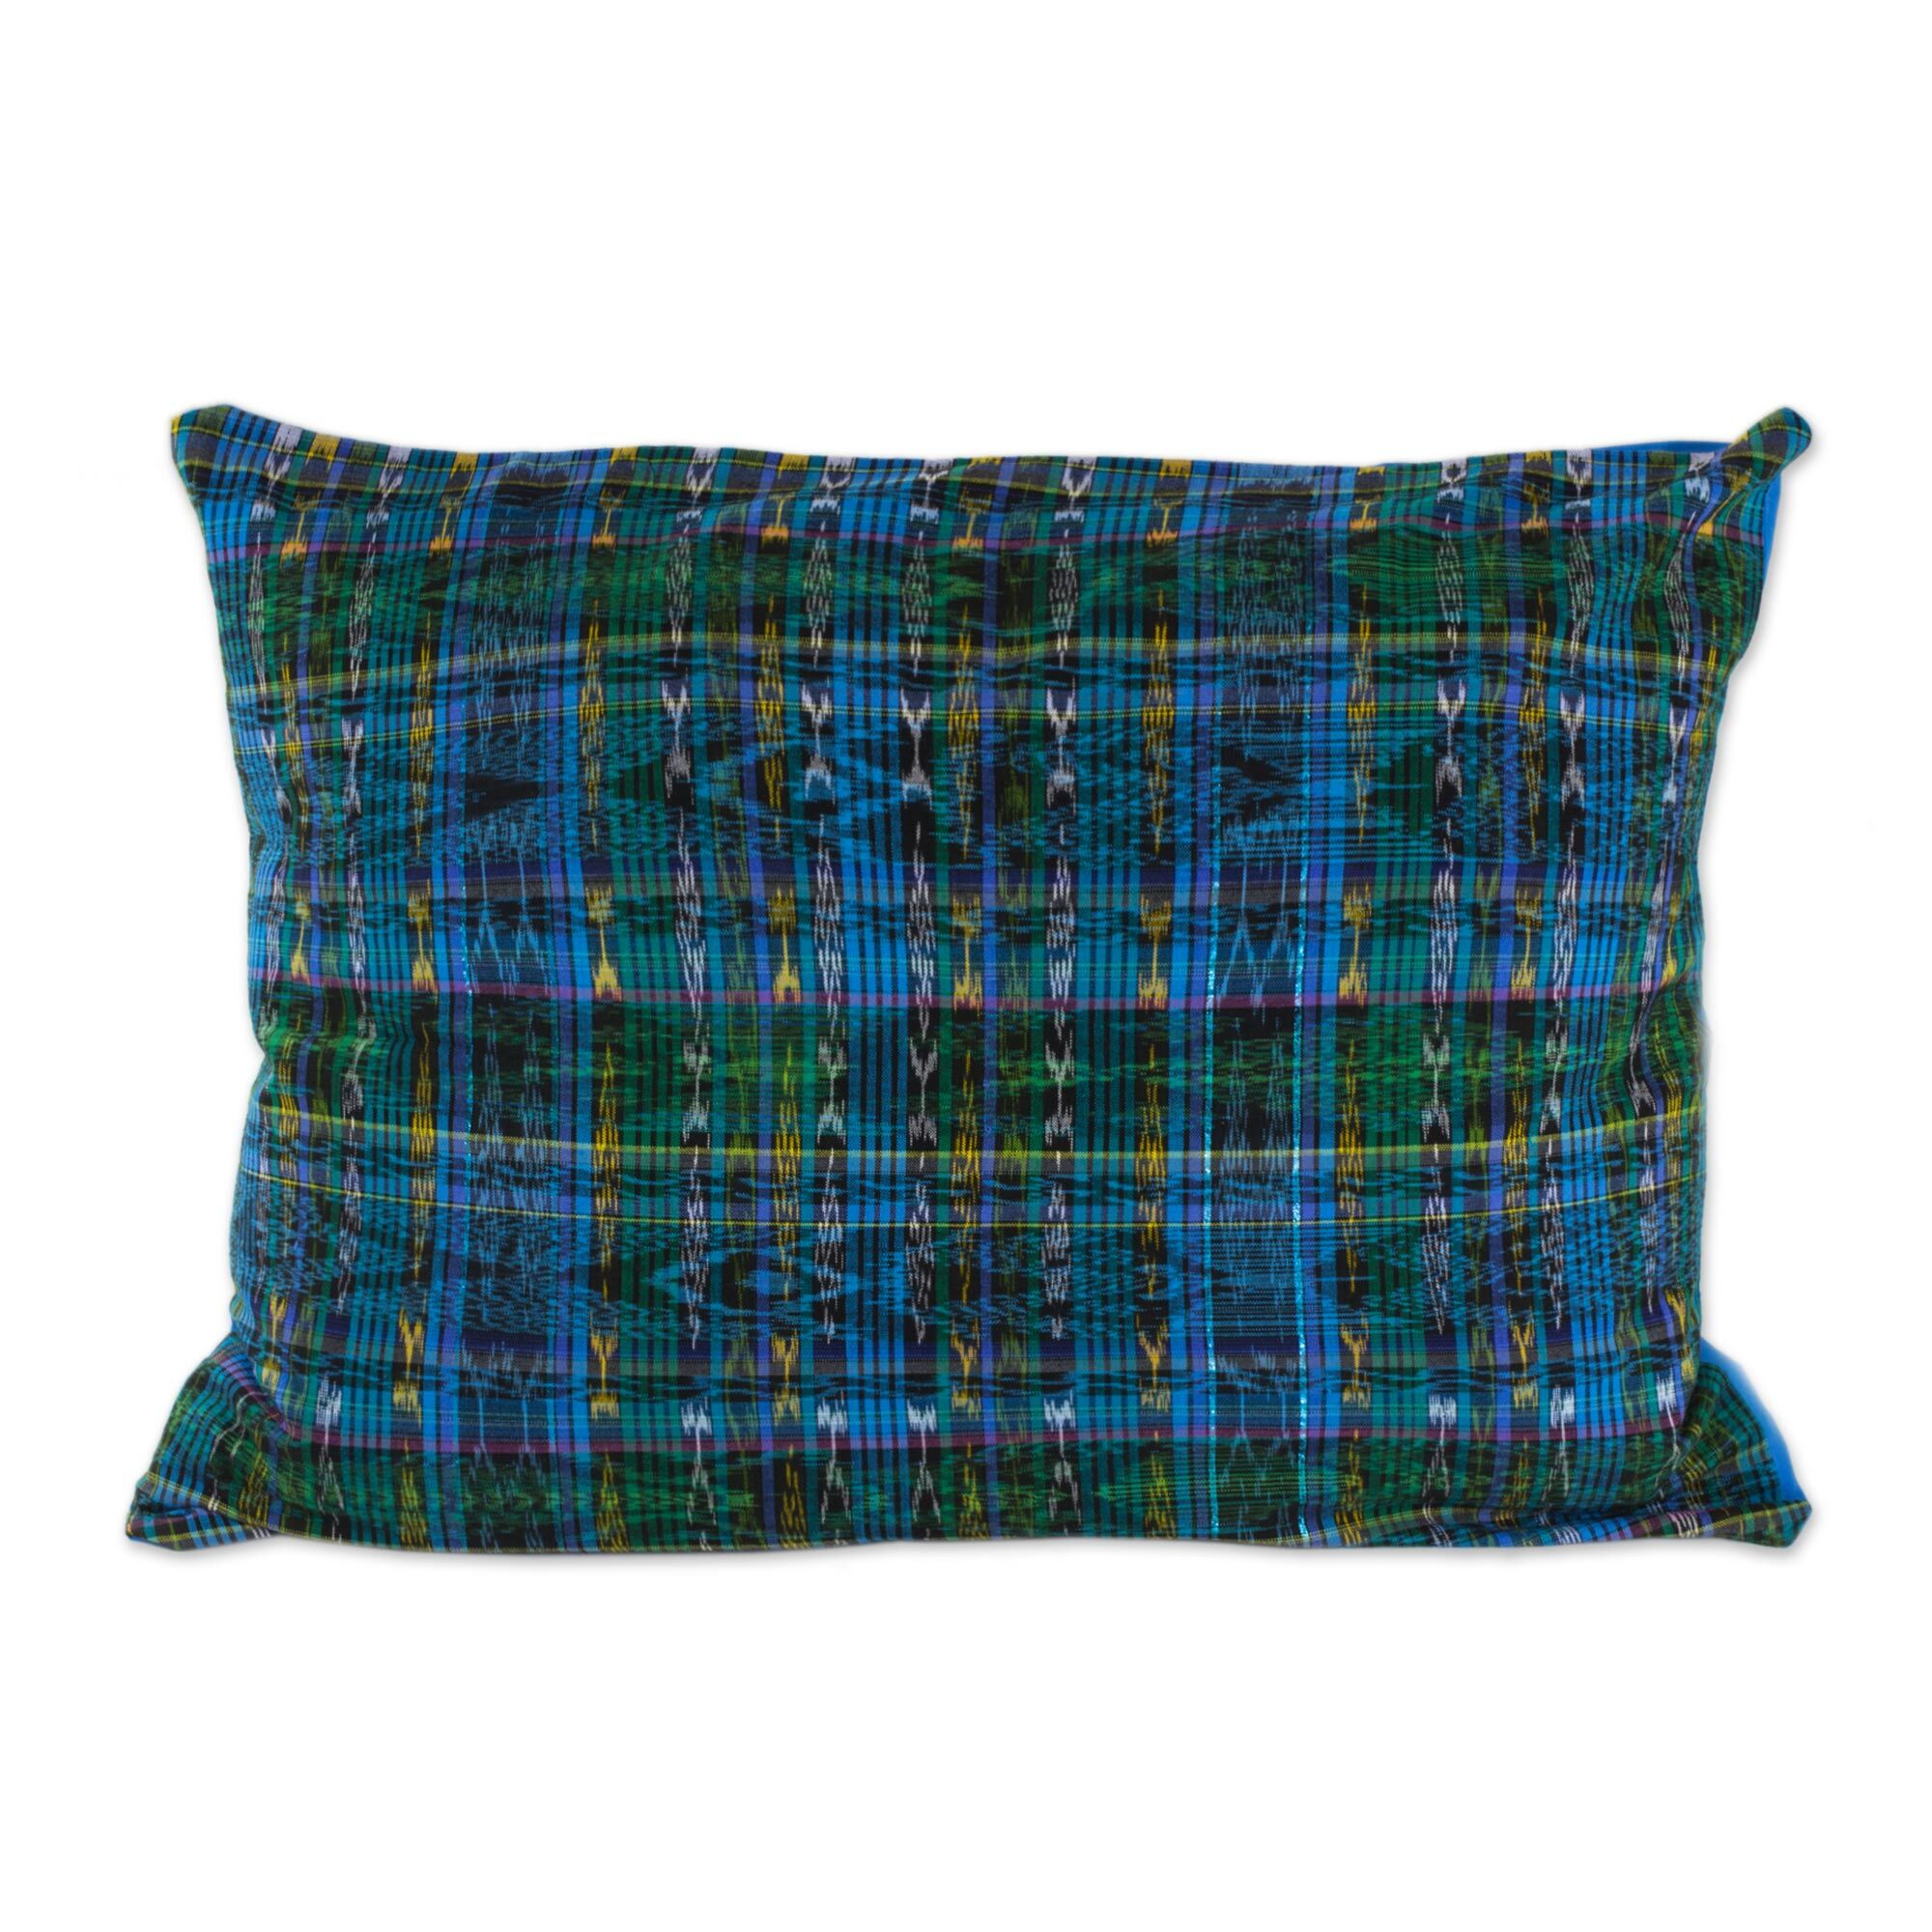 Ancestral Paths Pillow Case